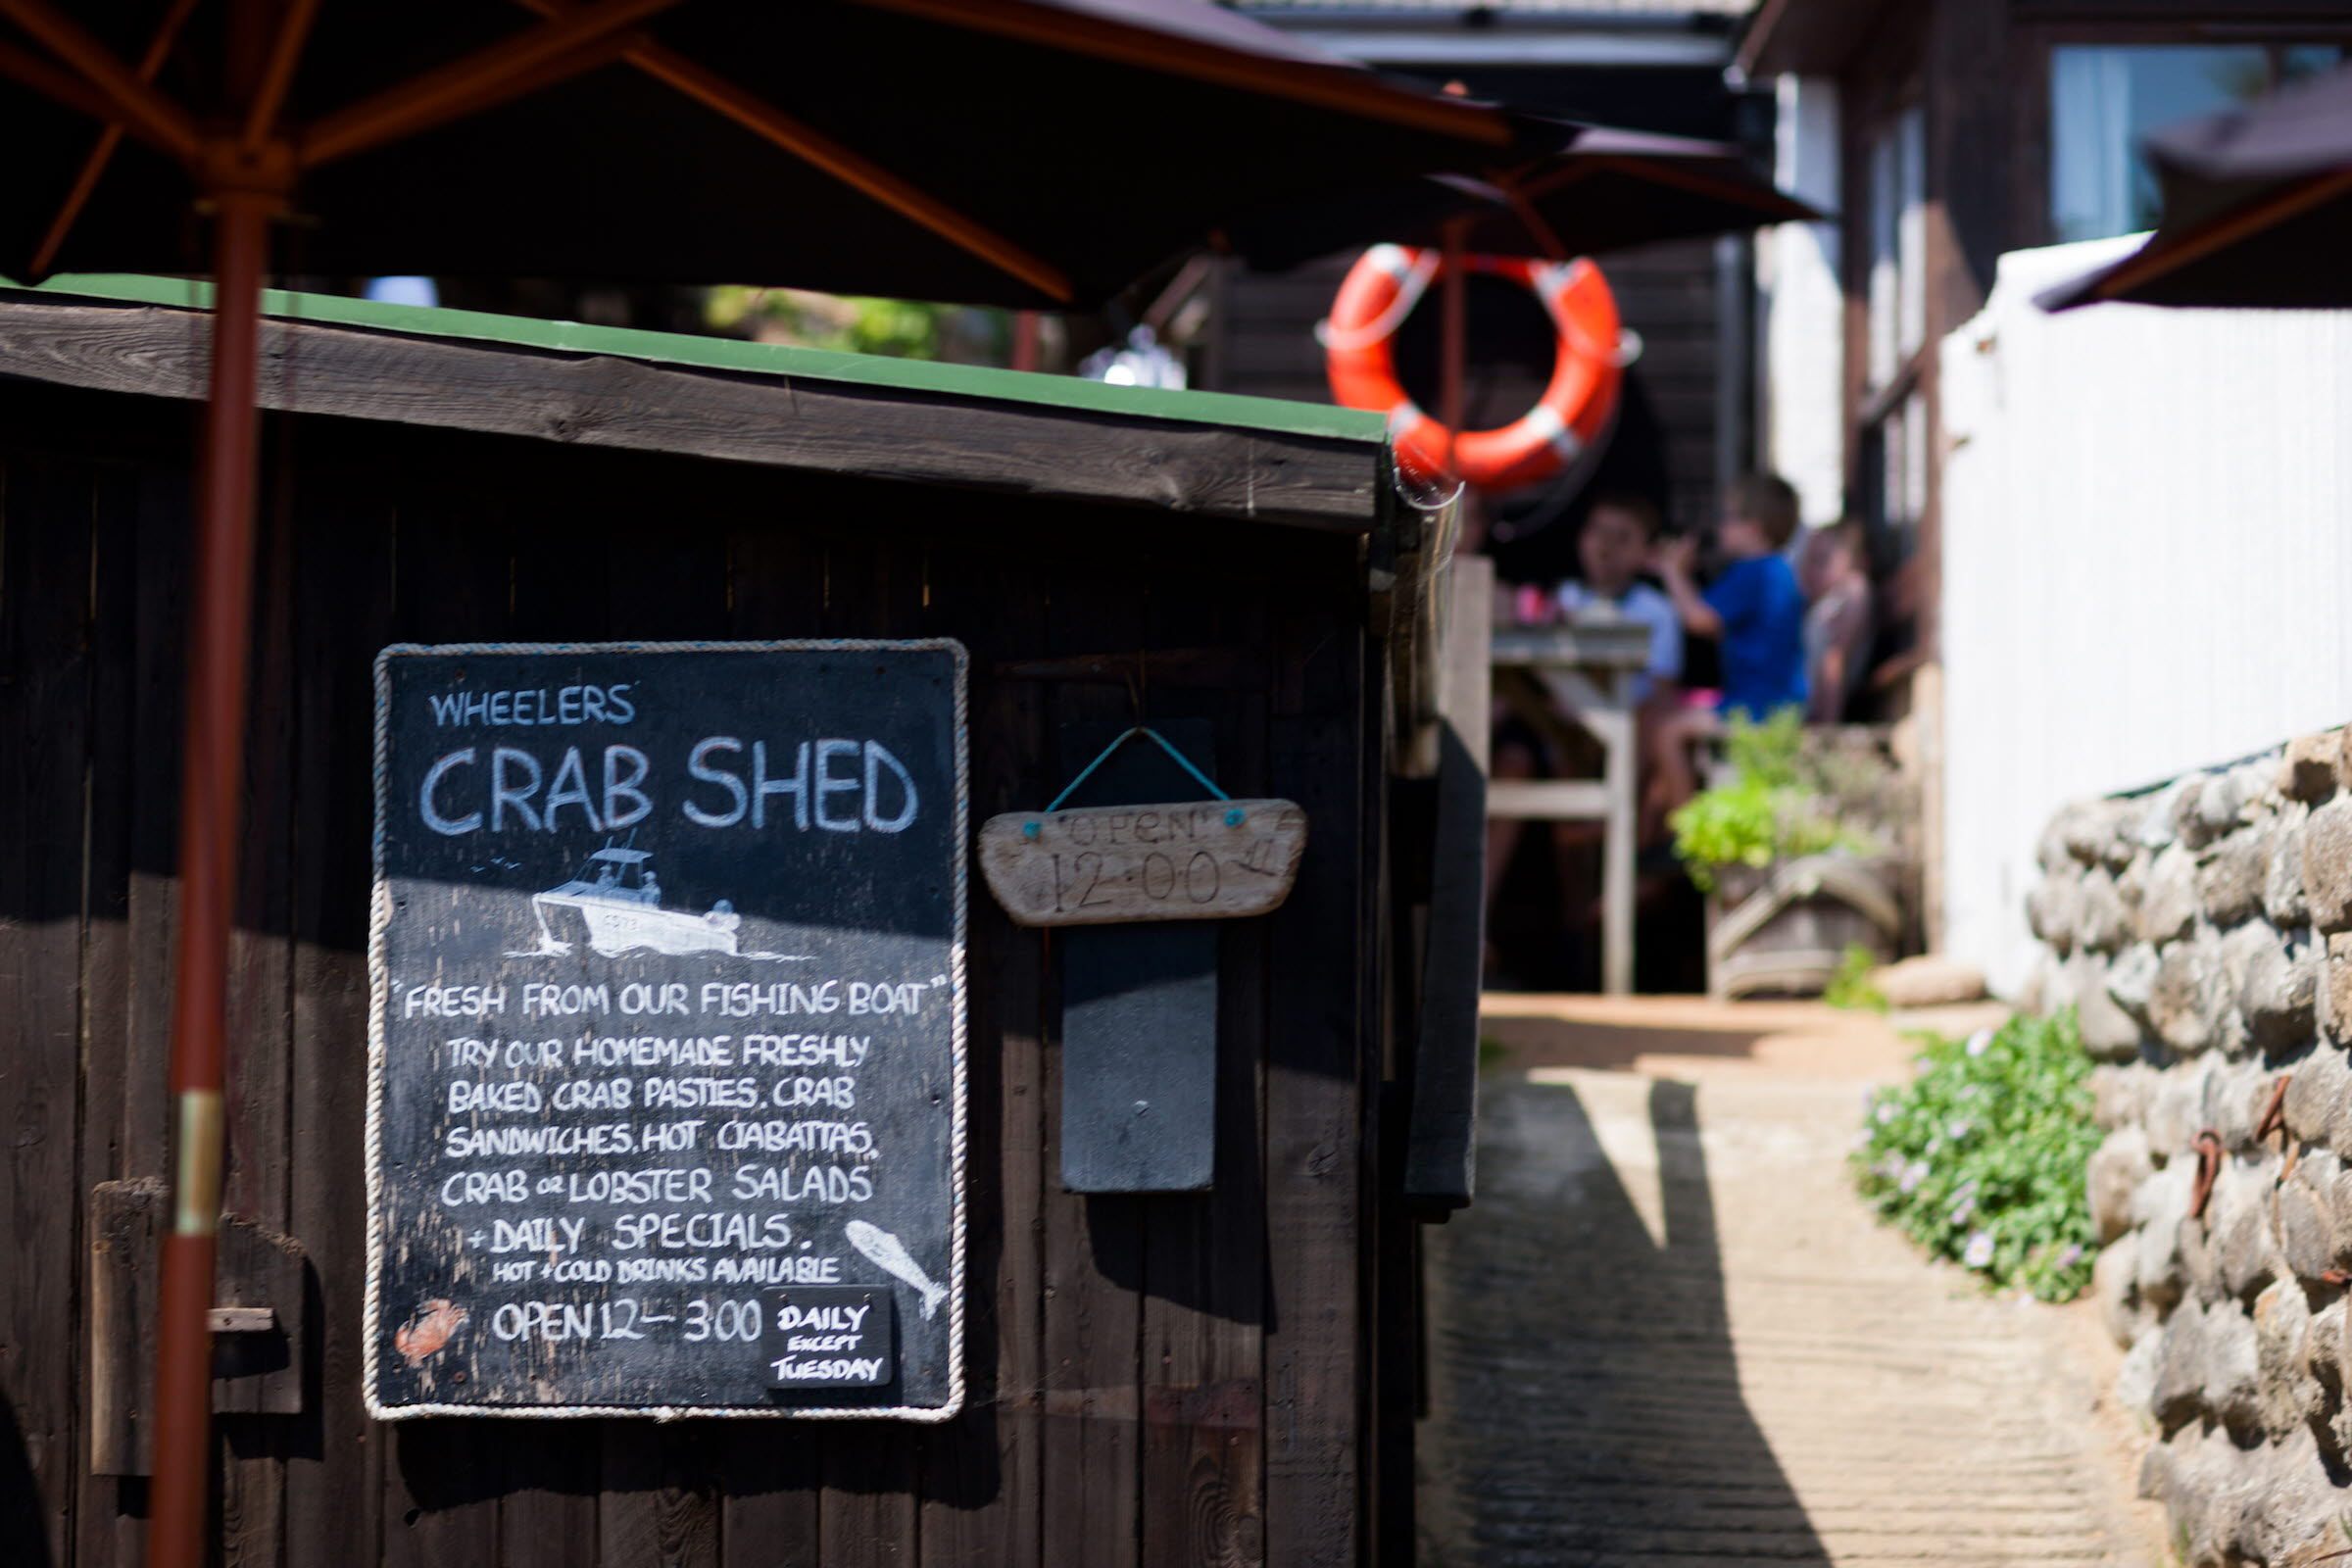 Crab Shed